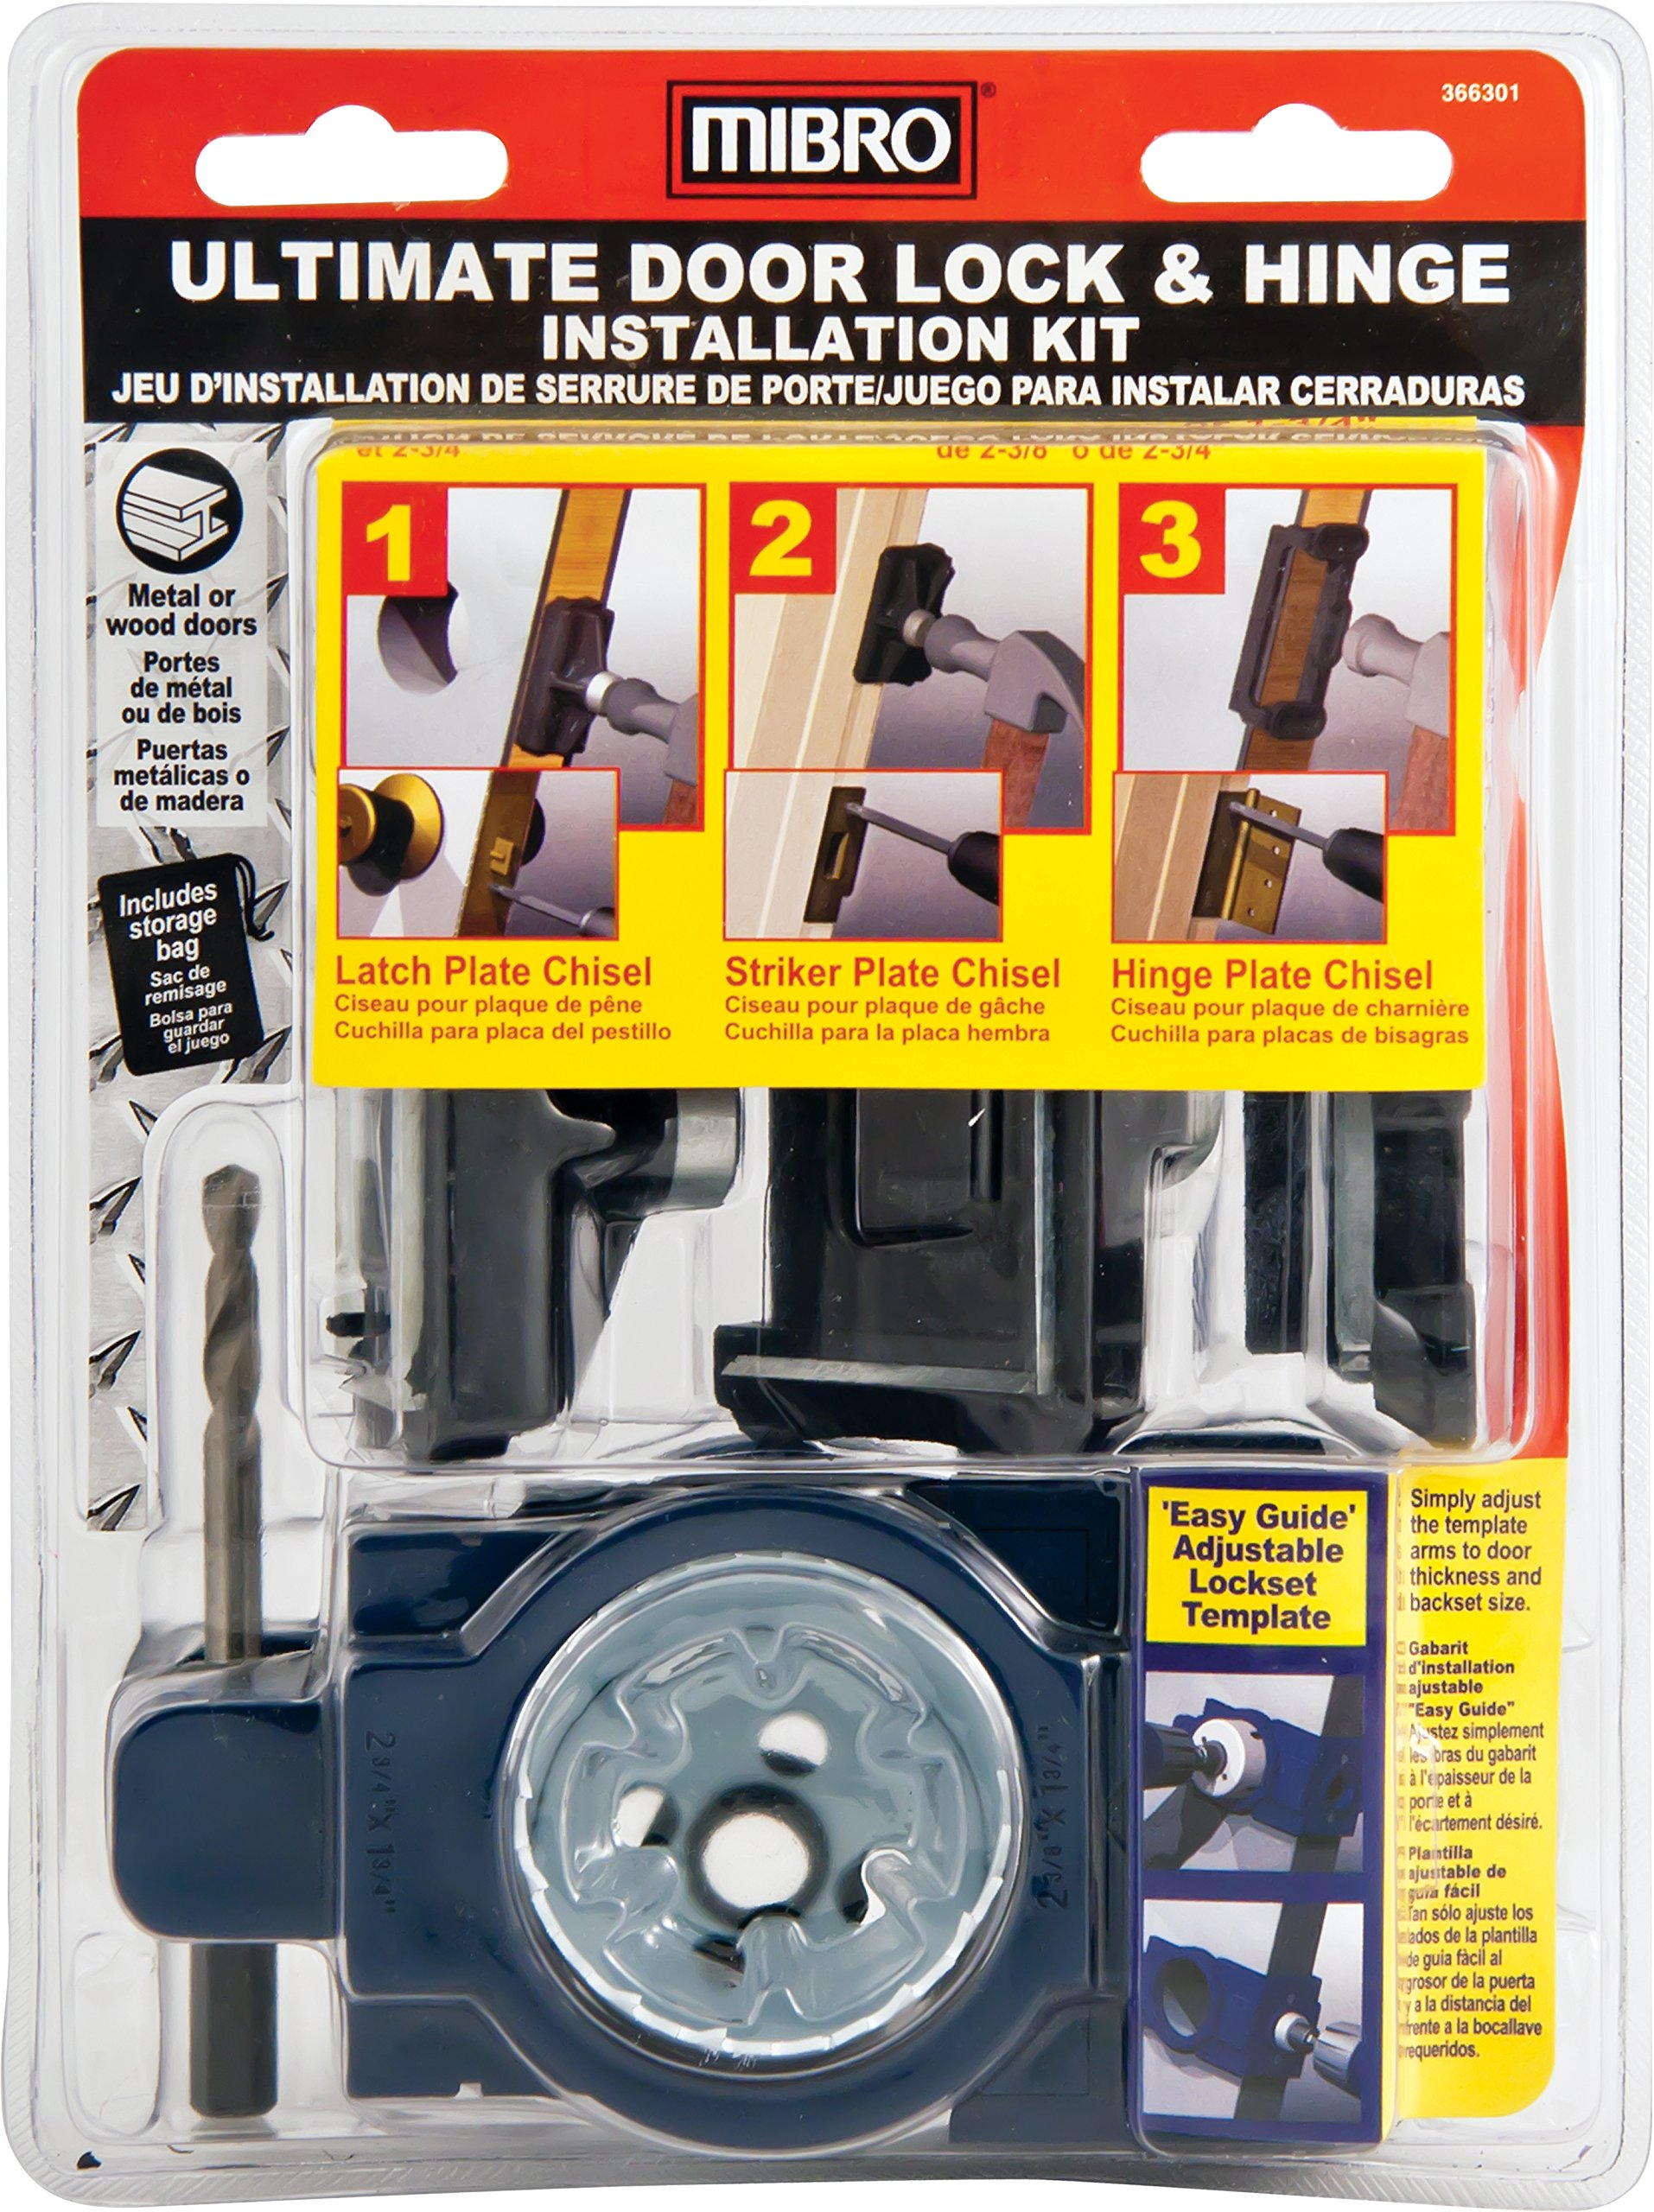 MIBRO 366301 Ultimate Door Lock and Hinge Installation Kit for Metal Doors